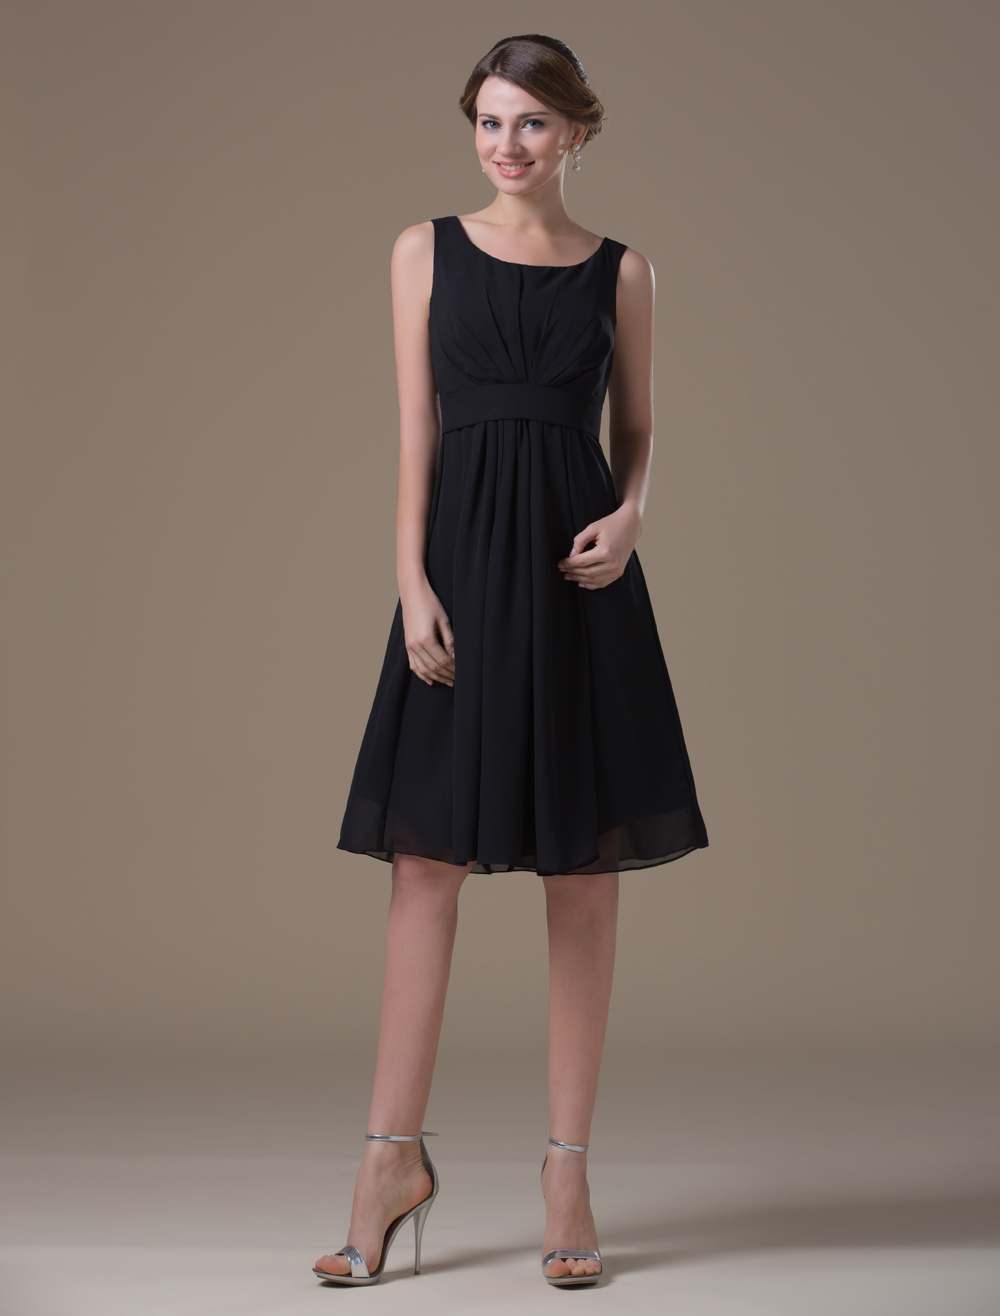 Concise Black Chiffon Tea Length Maternity Bridesmaid Dress